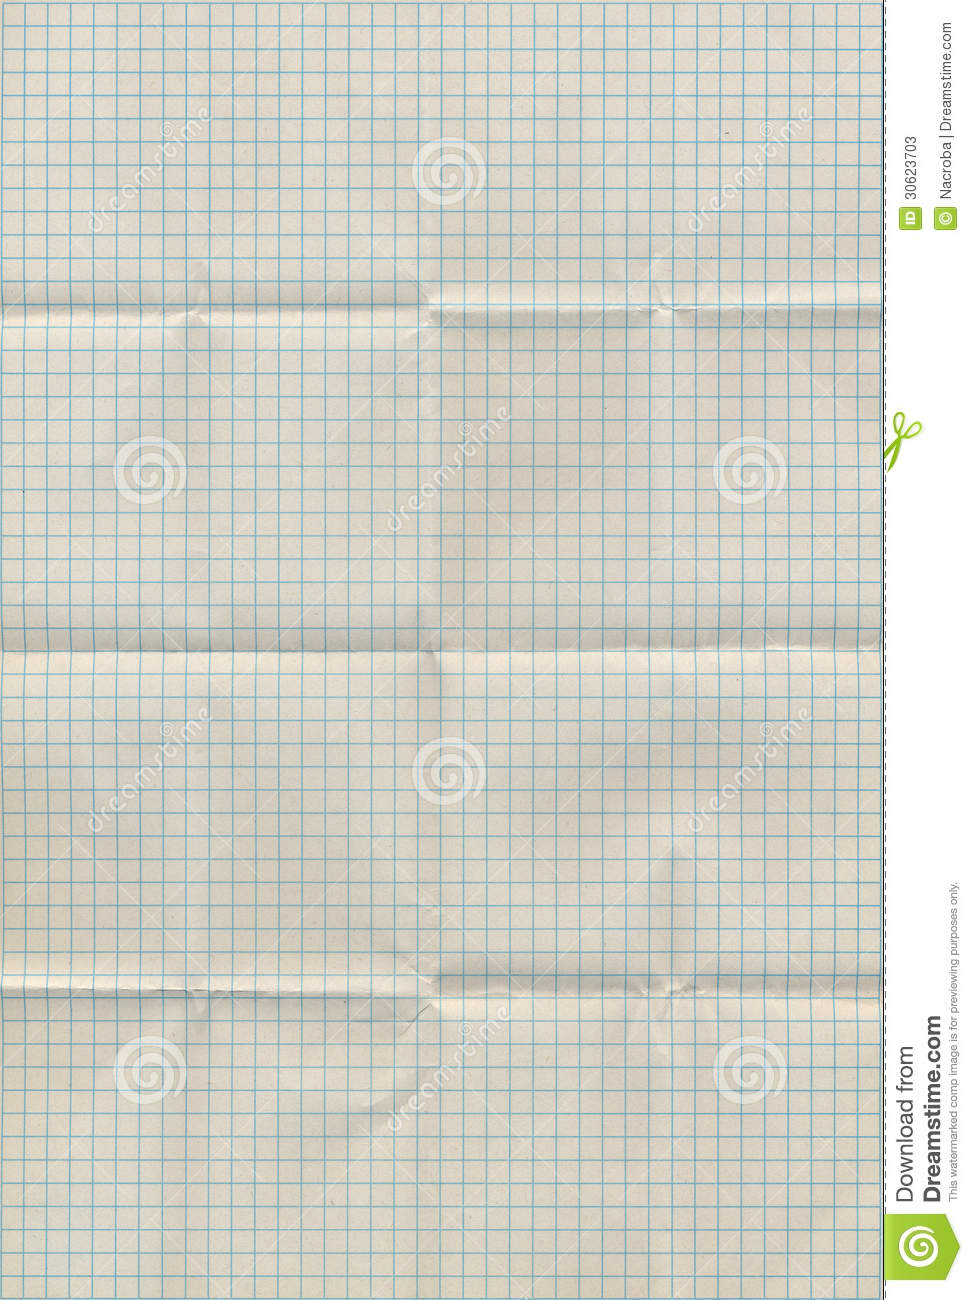 graph paper folded stock image  image of worn  backdrop